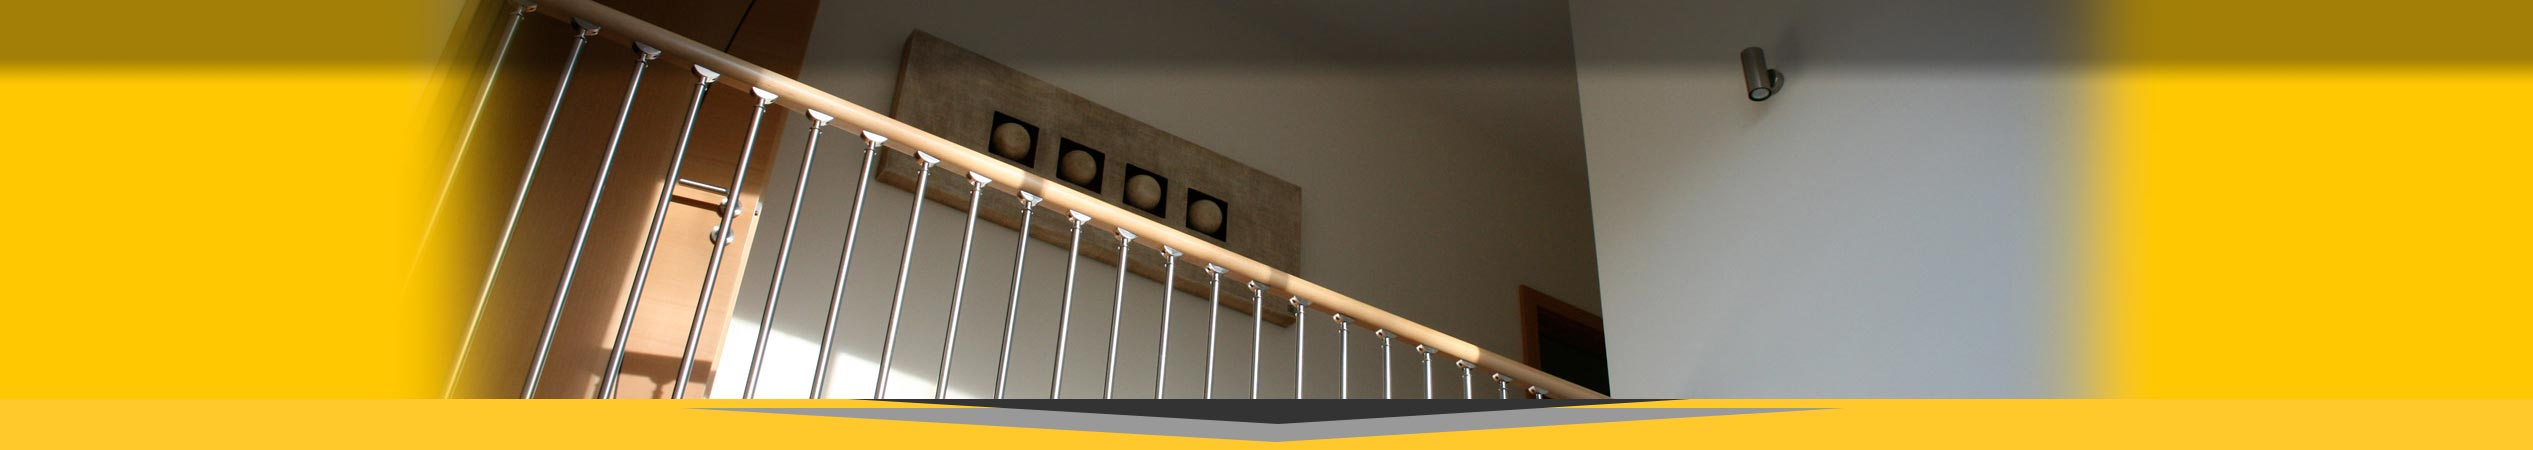 banisters-base-small